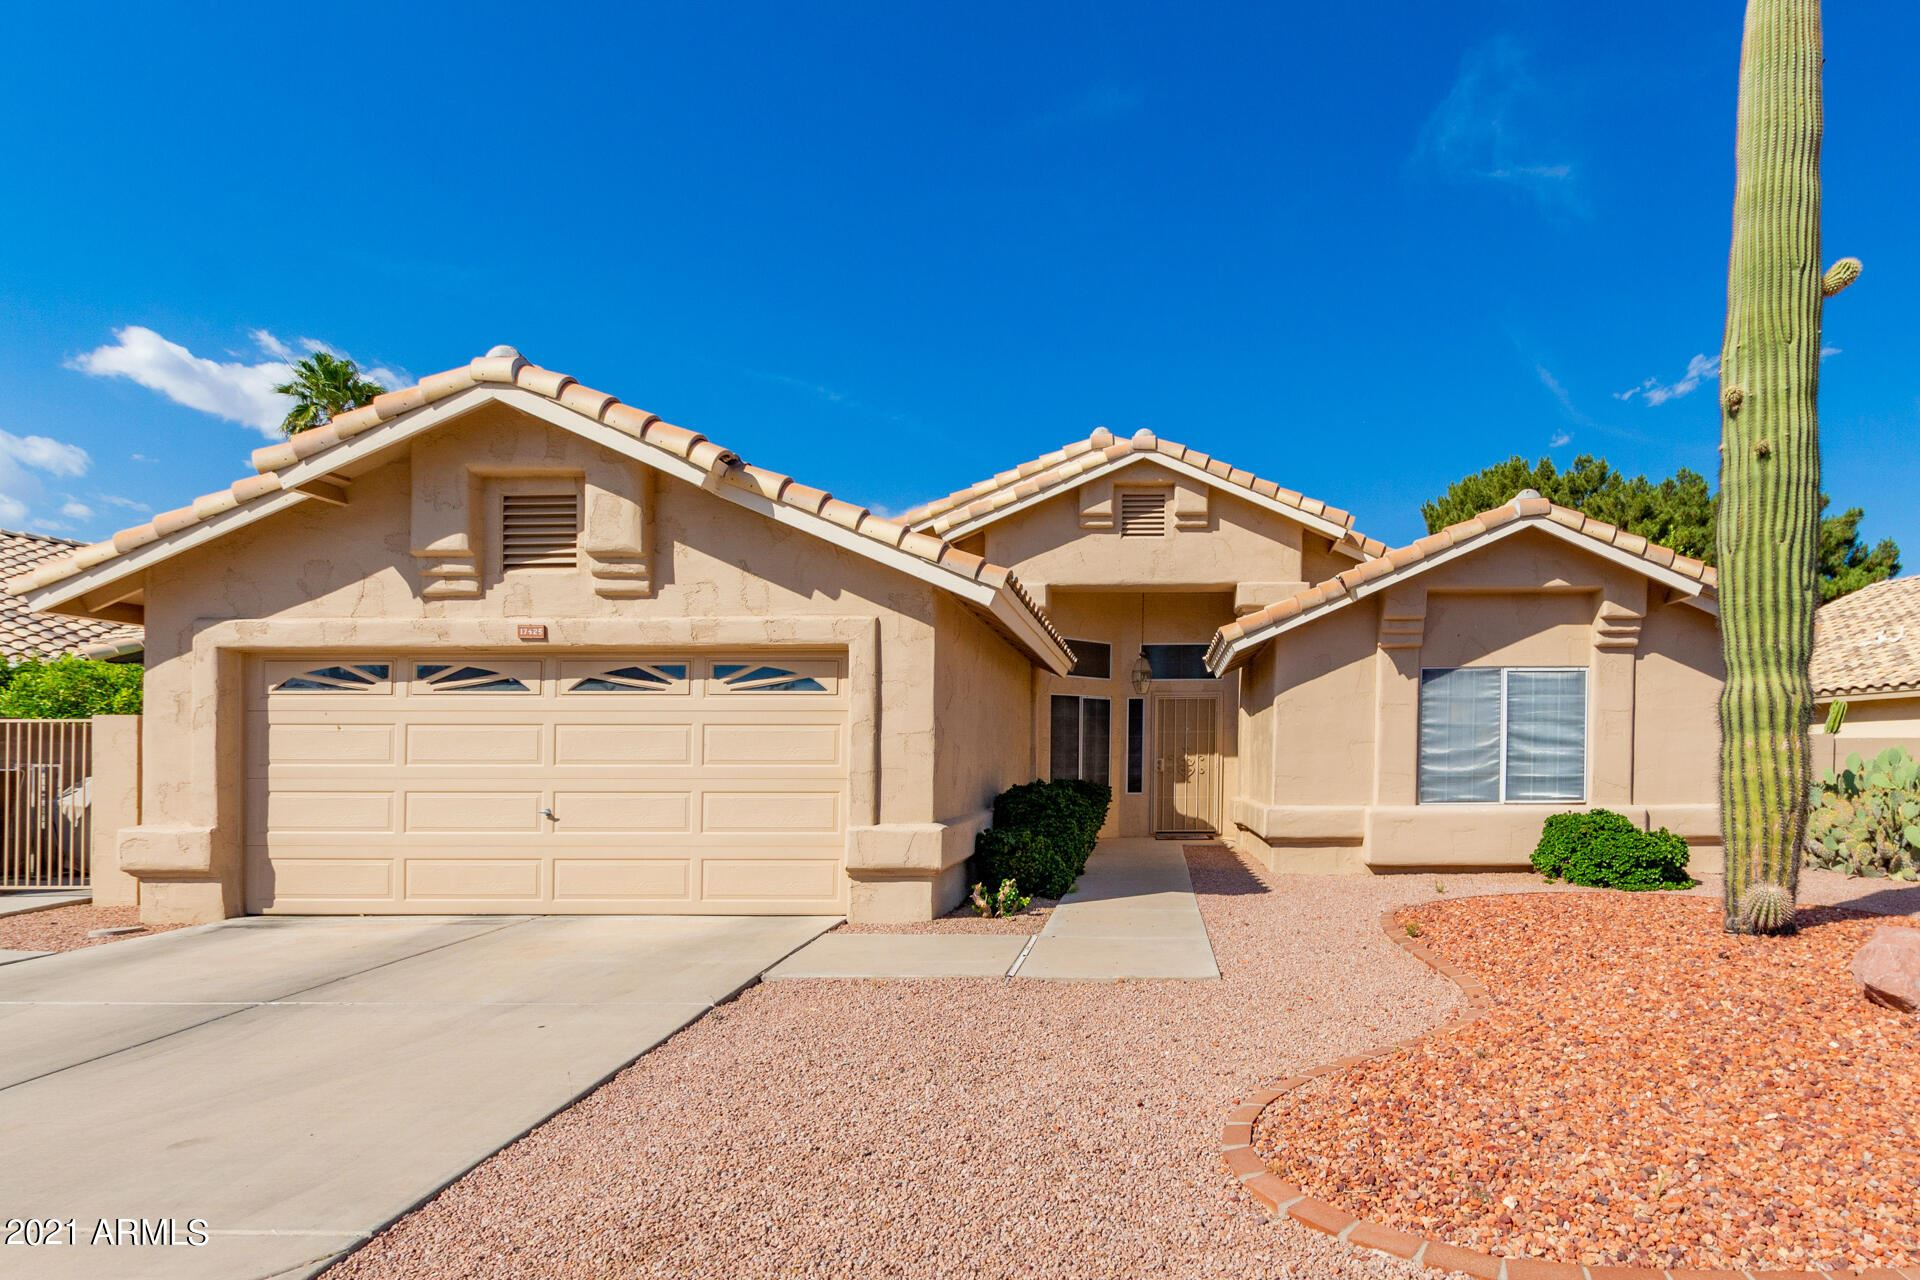 17425 N RAINBOW Circle, Surprise, AZ 85374 - MLS#: 6233769